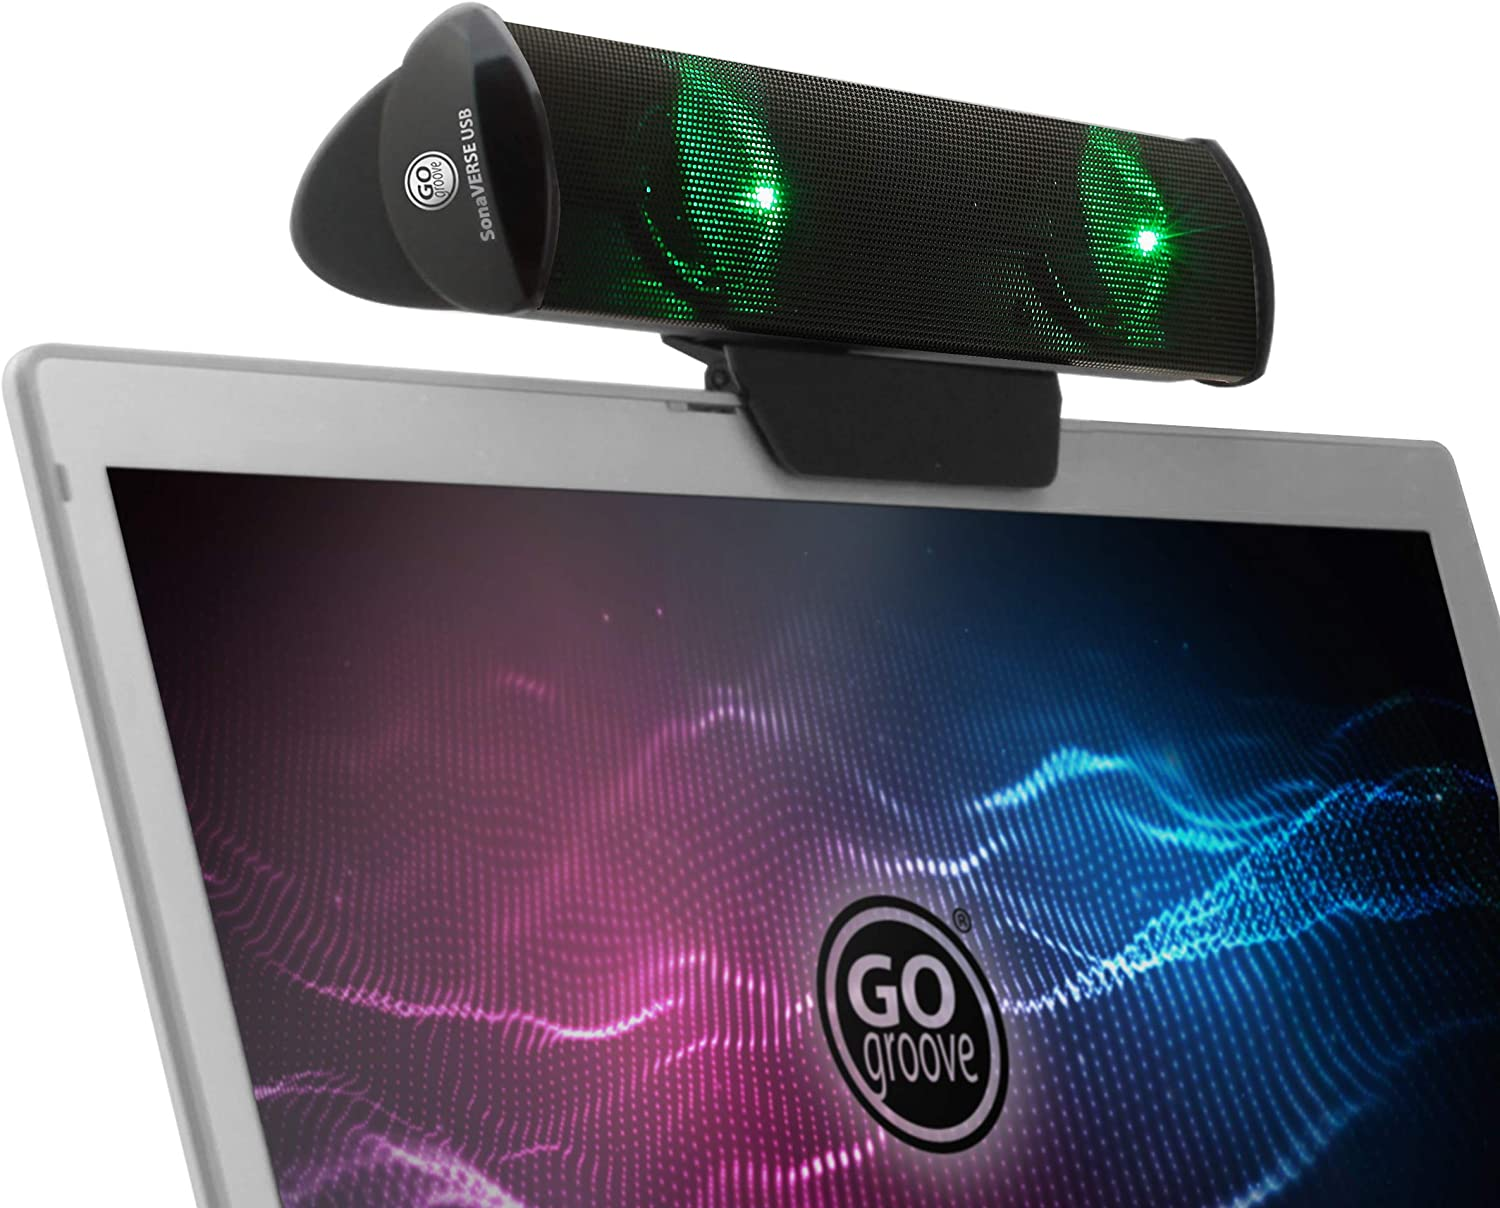 GOgroove SonaVERSE LED Speaker for Laptop Computer - USB Powered Clip-On Sound Bar with Mini Portable External Speaker Design for Monitor, Back Switch for Power - Audio Input and Power (Green)